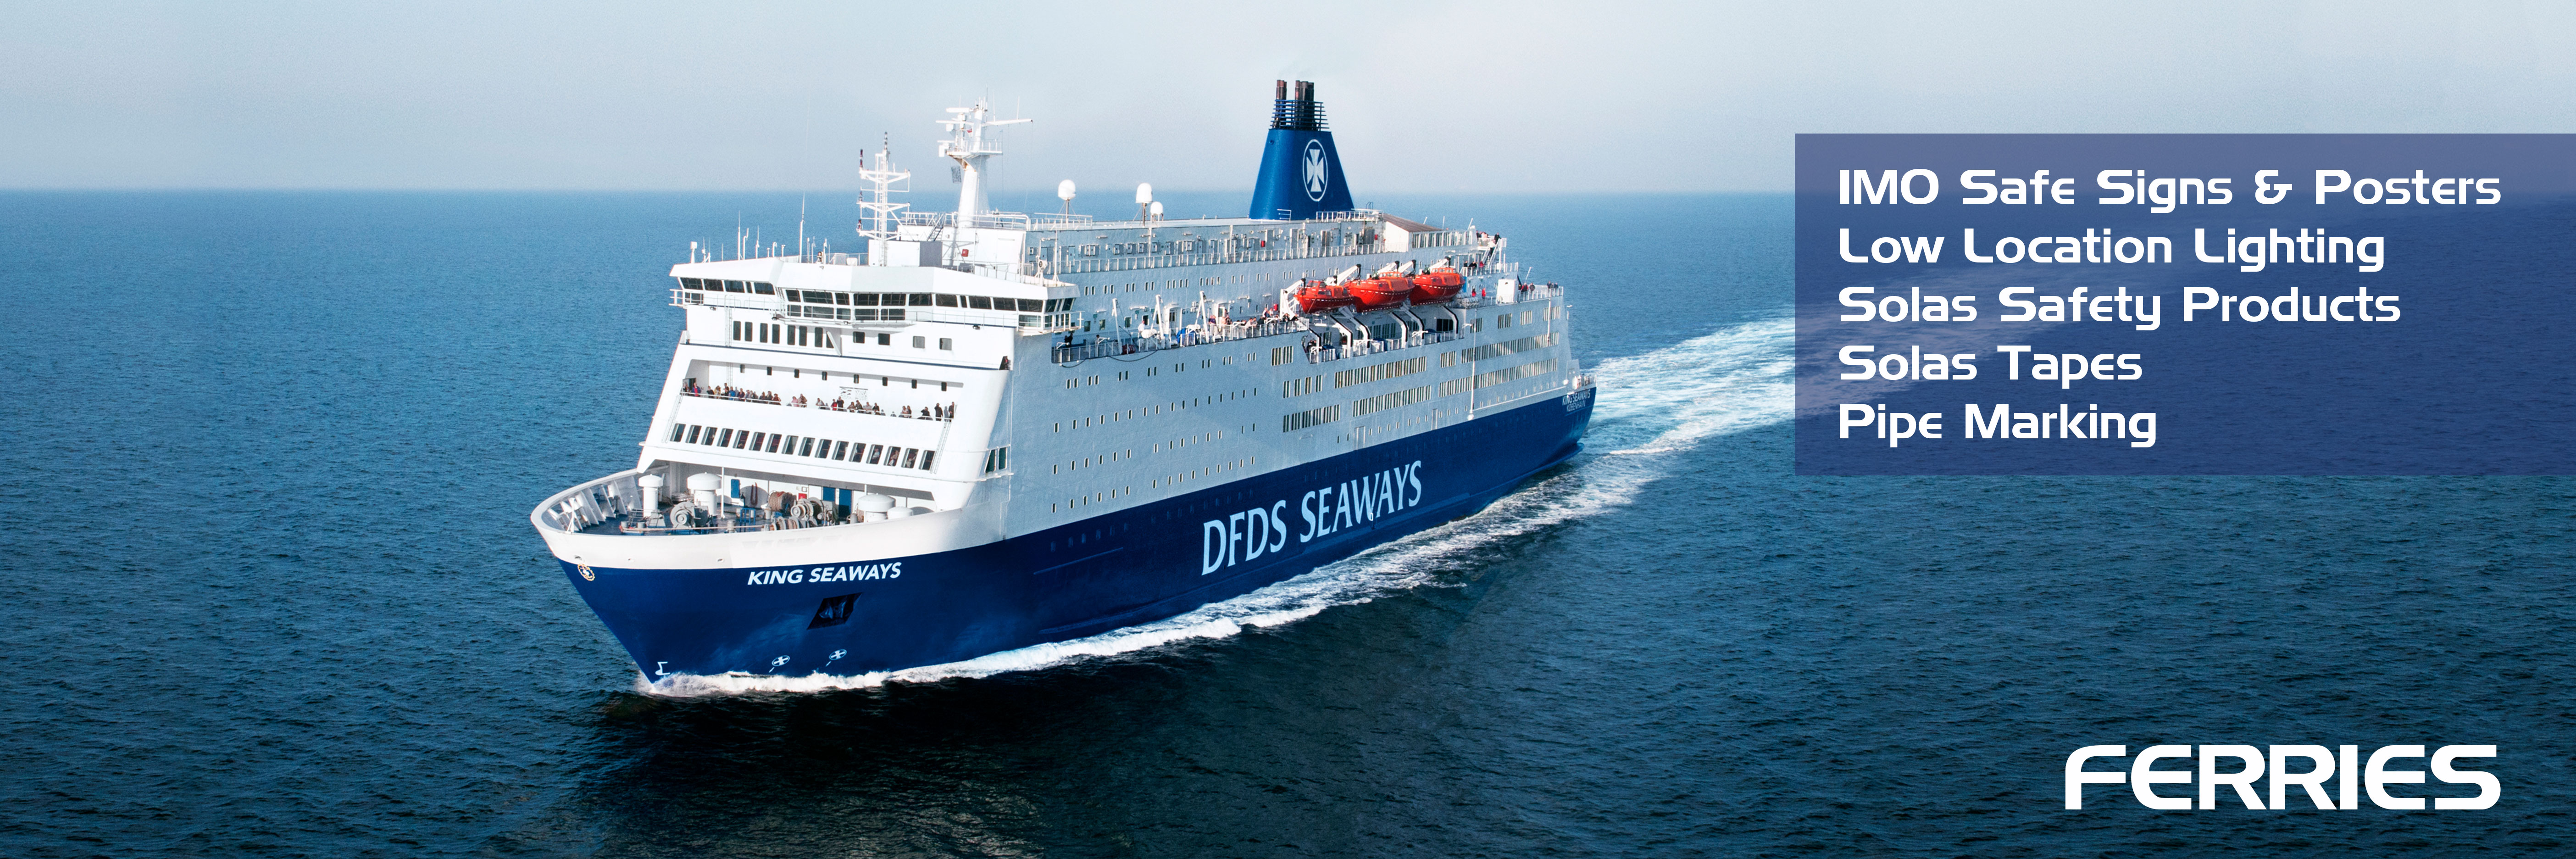 FERRIES T-ISS Safety Suppliers